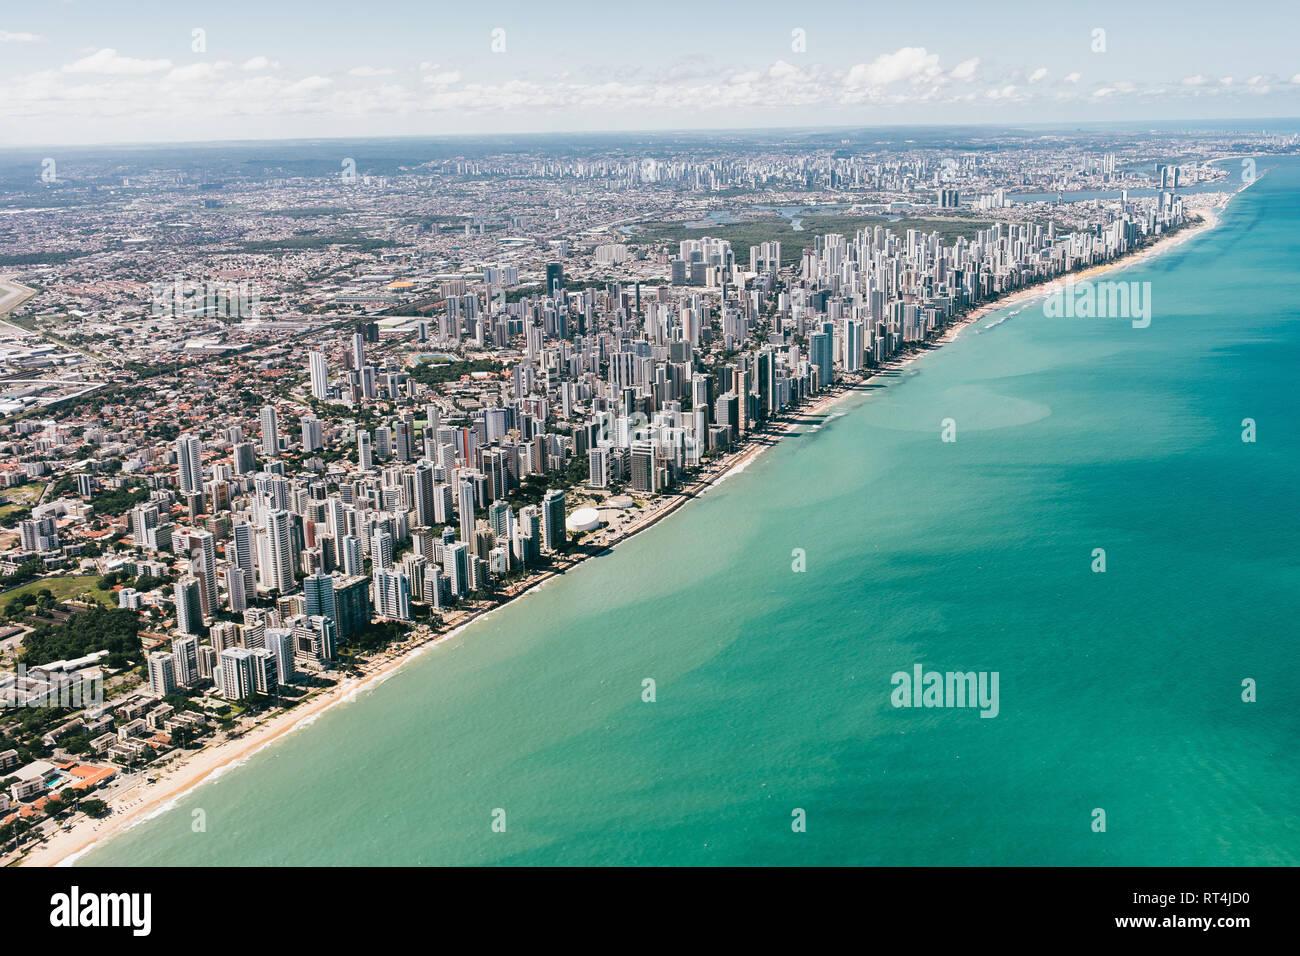 Aerial view of Recife, Brazil - Stock Image